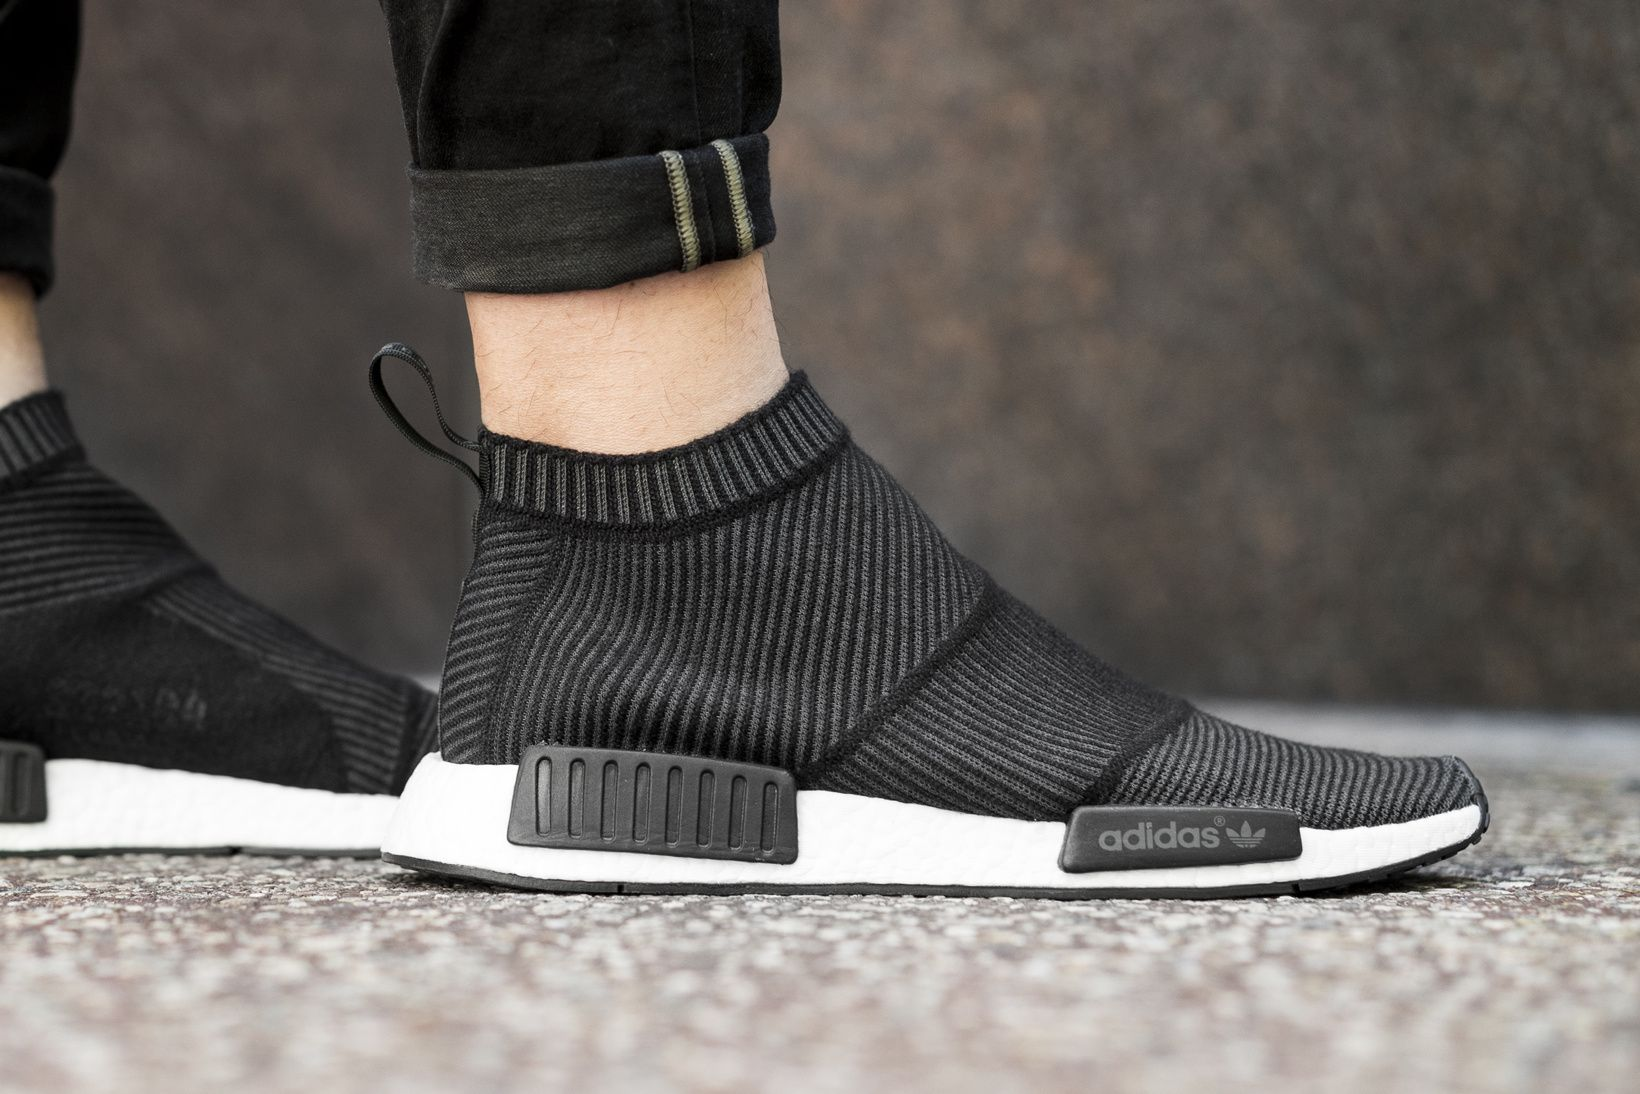 Adidas Nmd City Sock Black White Sole Collector Adidas Shoes Women Nmd City Sock Best Sneakers